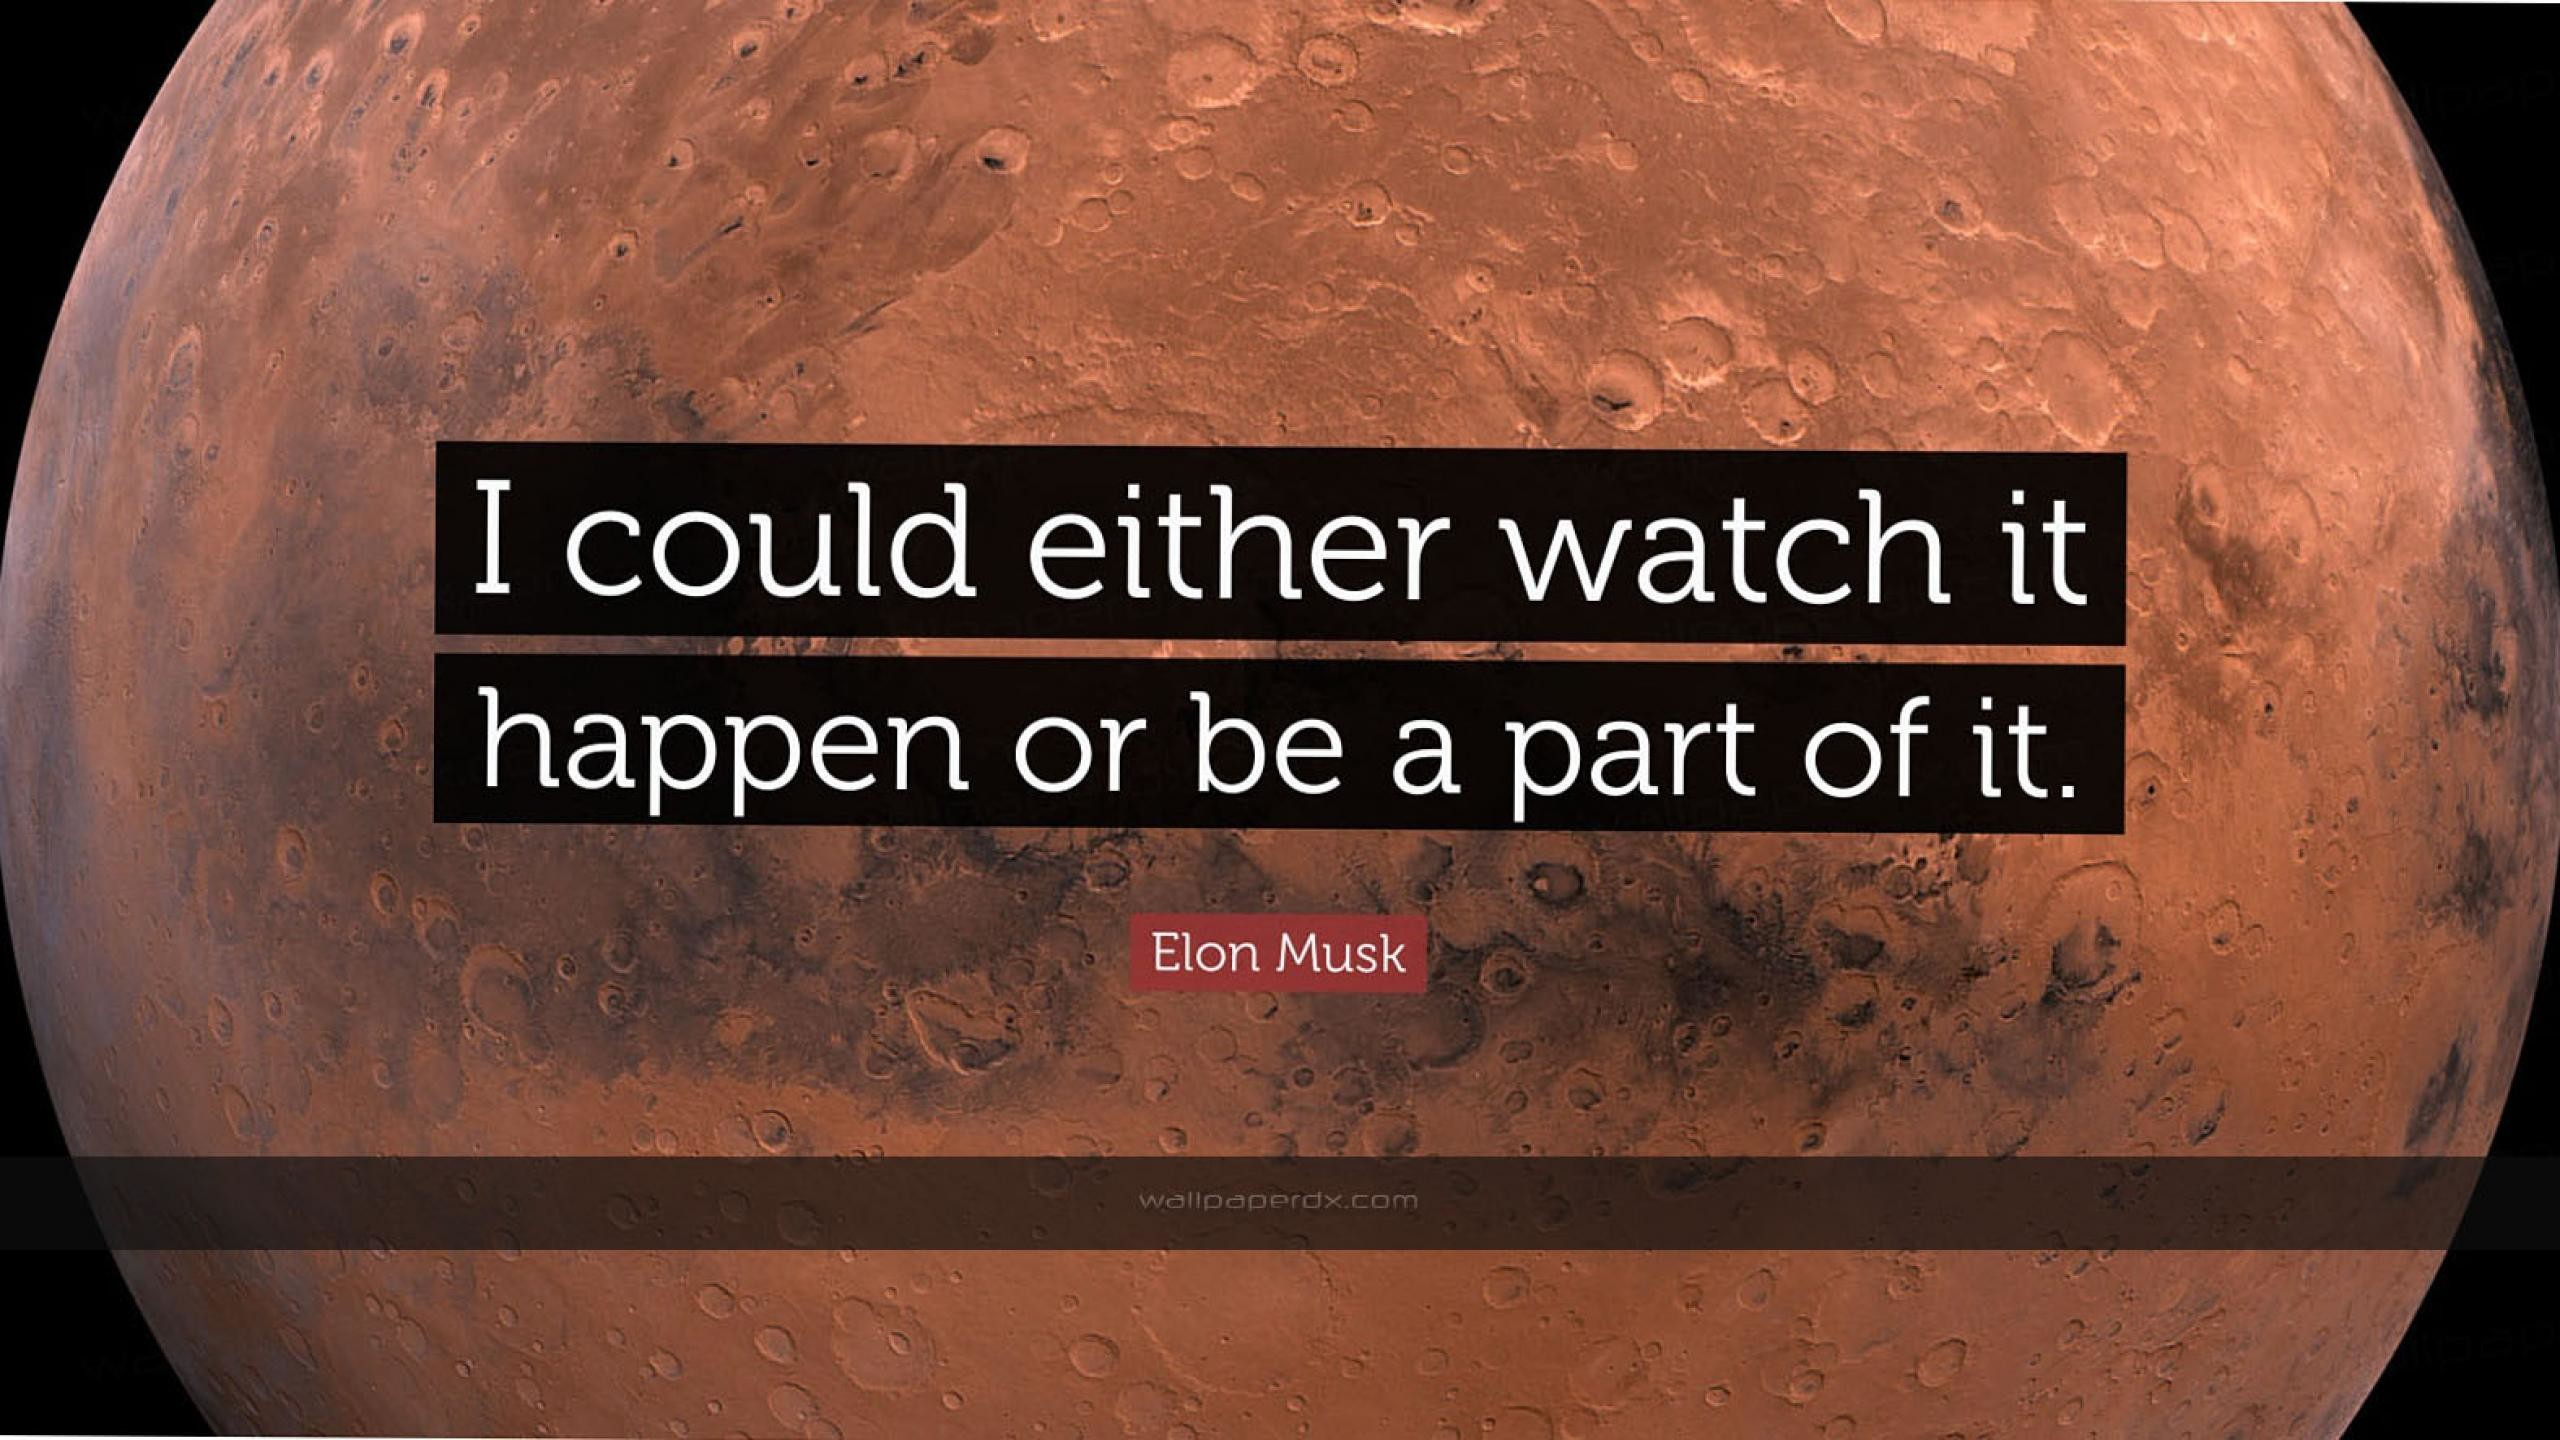 2341 elon musk quote i could either watch it happen or be a part of it hd  wallpaper – 2560 x 1440